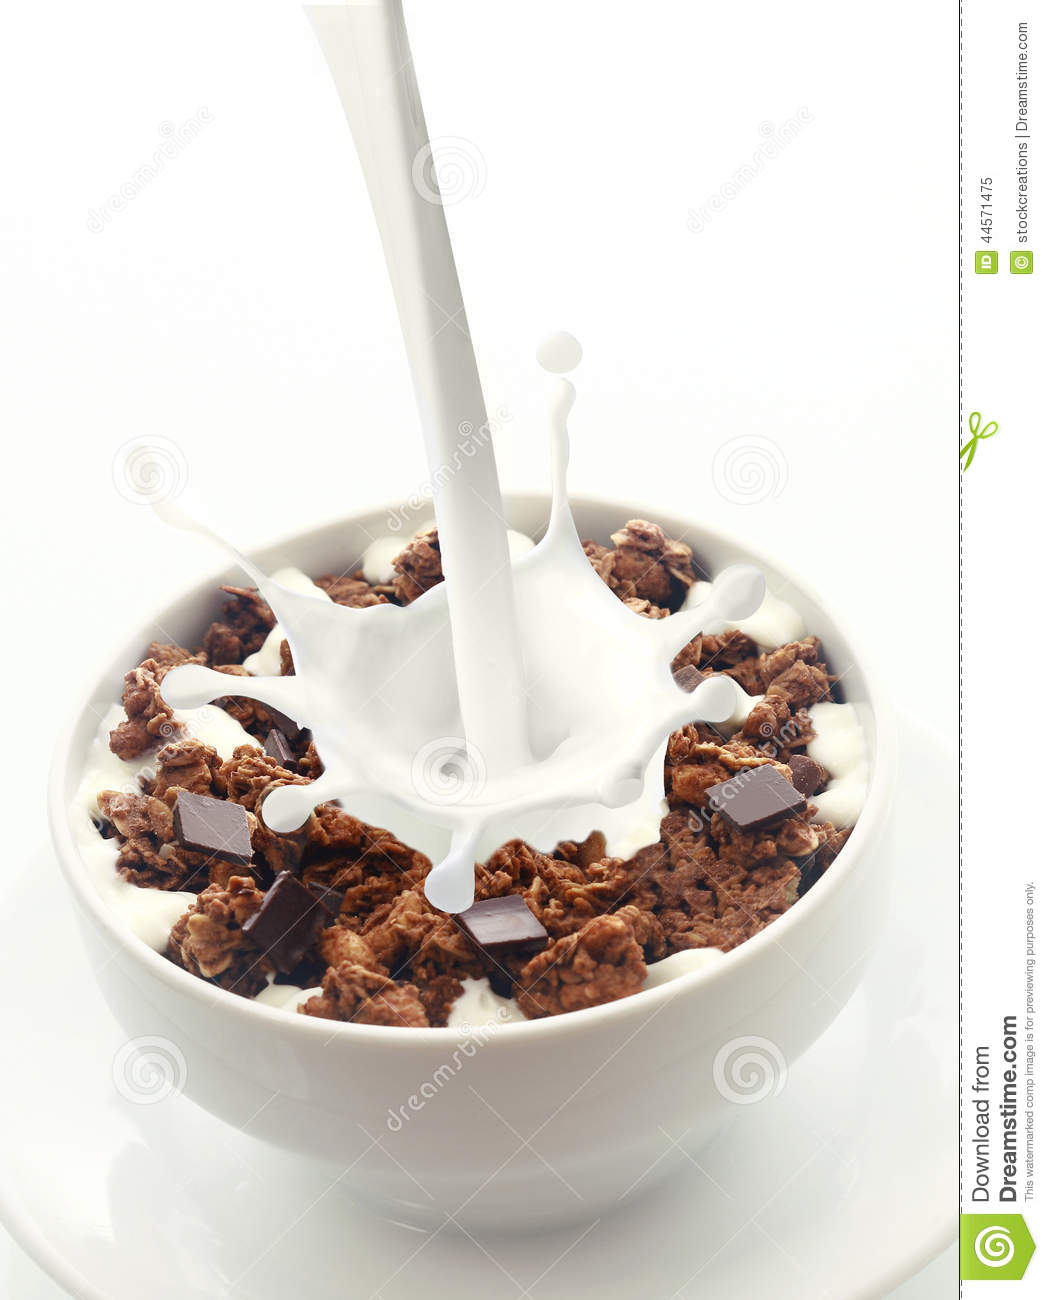 Pouring Milk Into Choc Chip Breakfast Cereal Stock Image